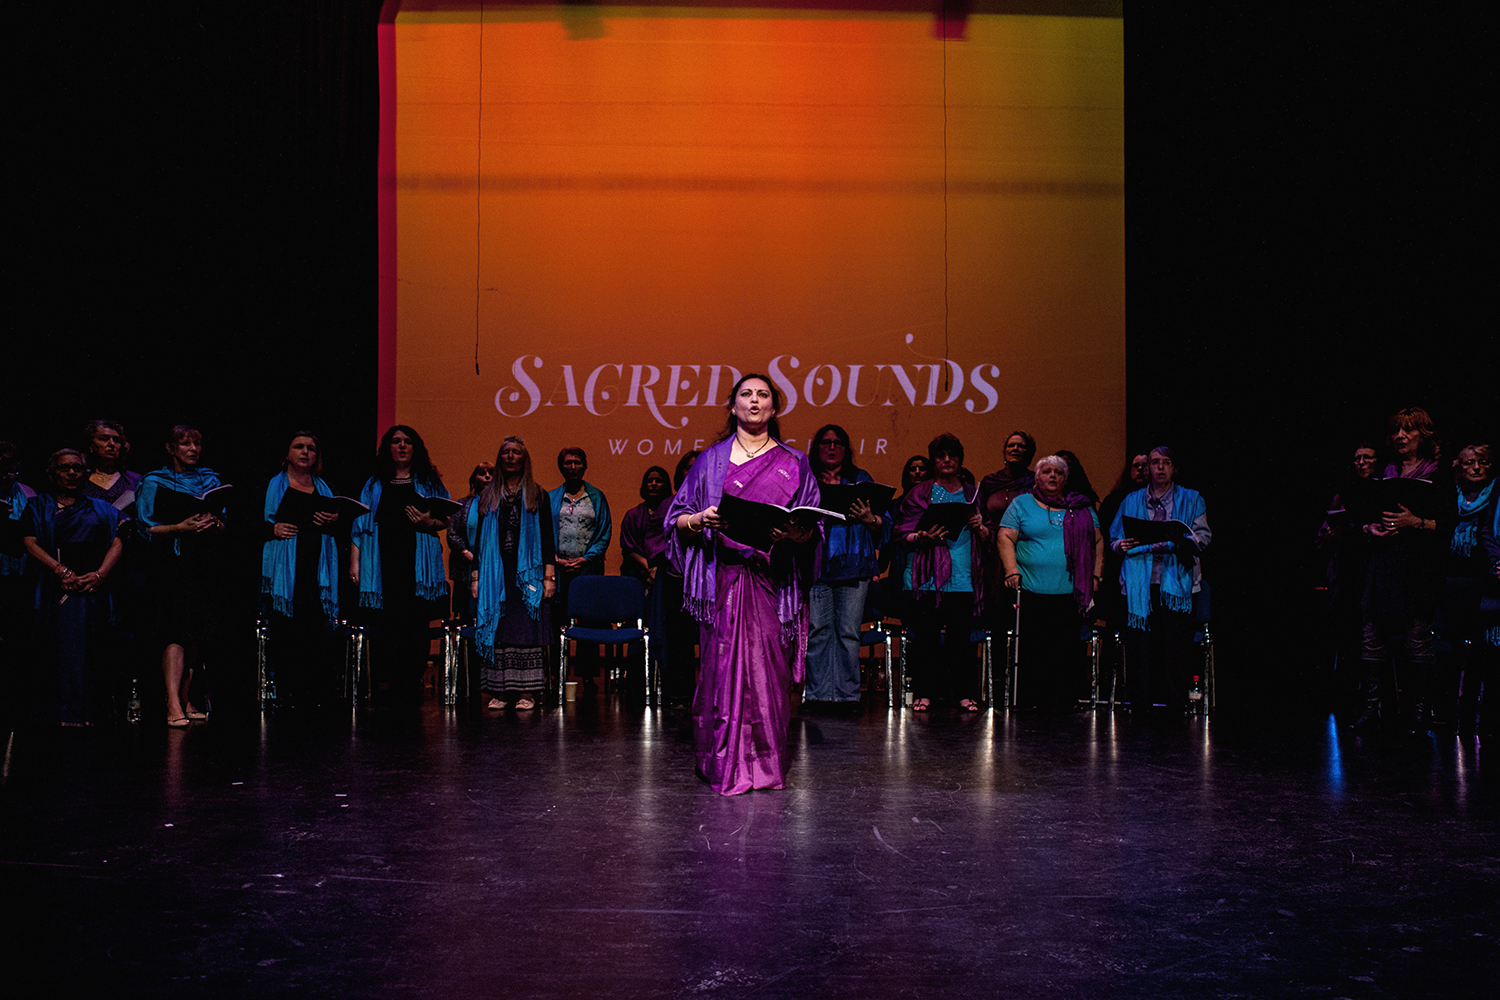 A choir member leading the rest of the Sacred Sounds Women's Choir in the Buddhist Peace Chant 'Shaantih' Photo: Michela De Rossi